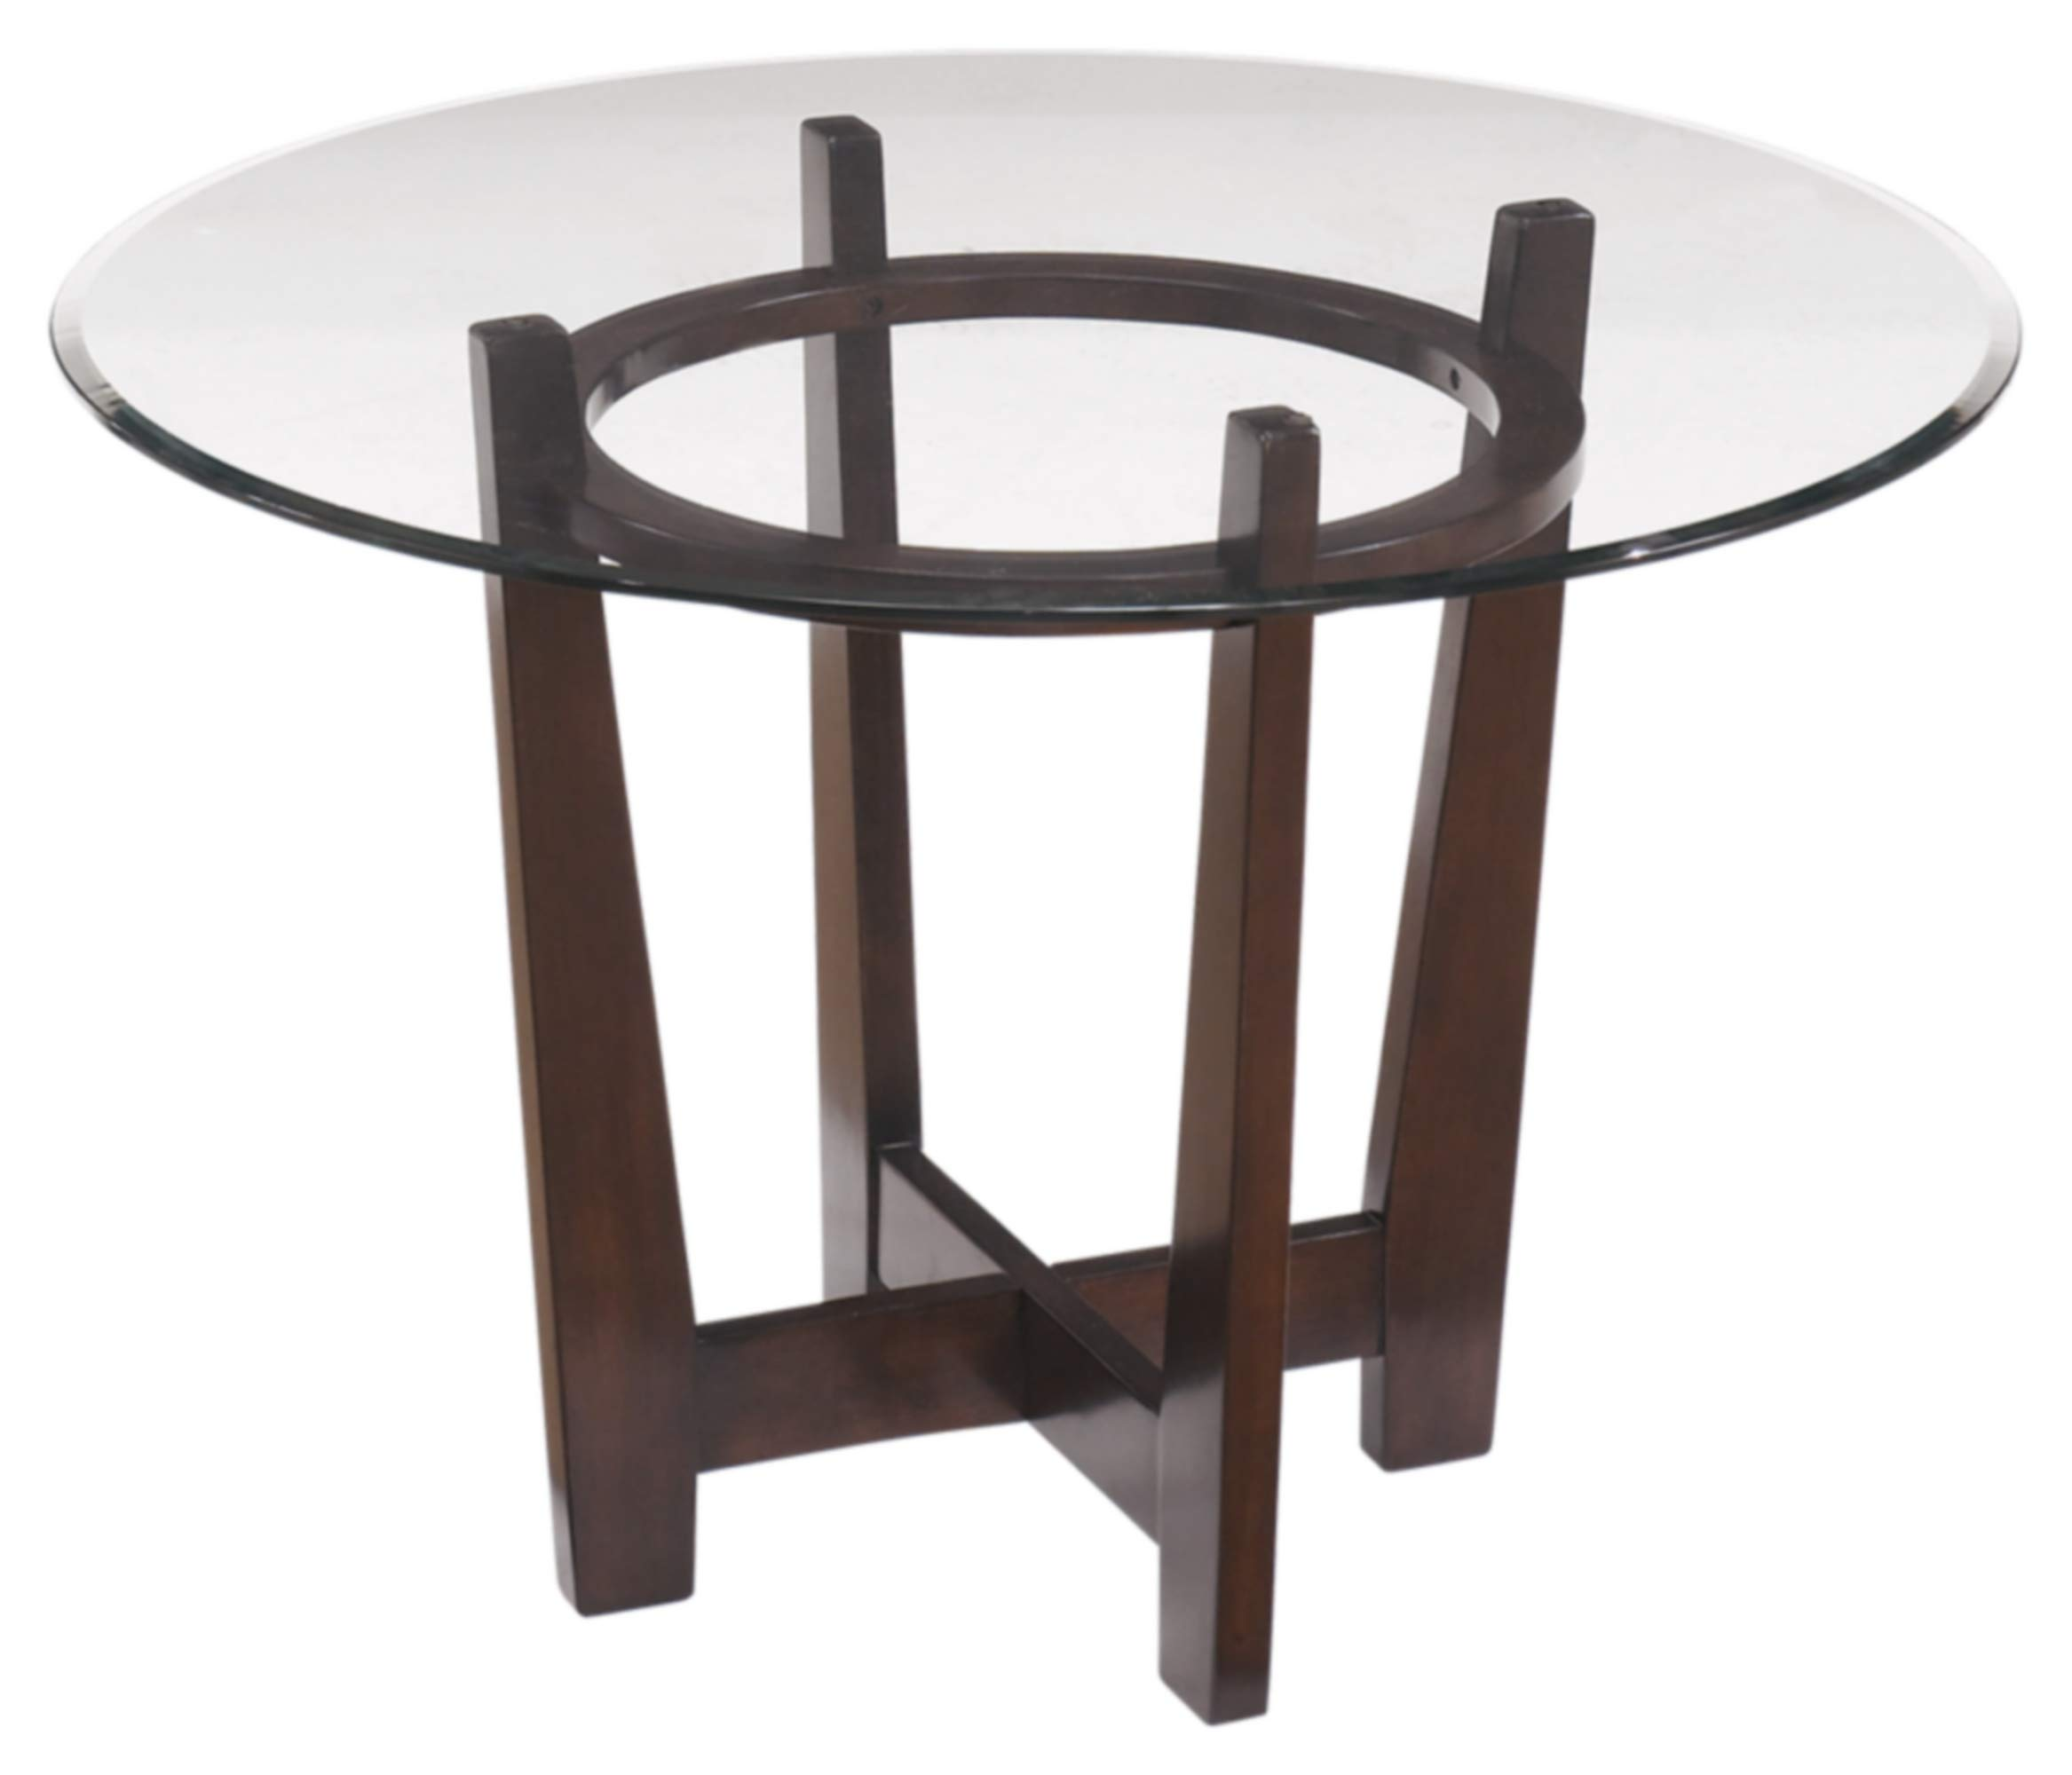 Ashley Furniture Signature Design - Charrell Dining Room Table - Glass Top - Round - Medium Brown by Signature Design by Ashley (Image #1)